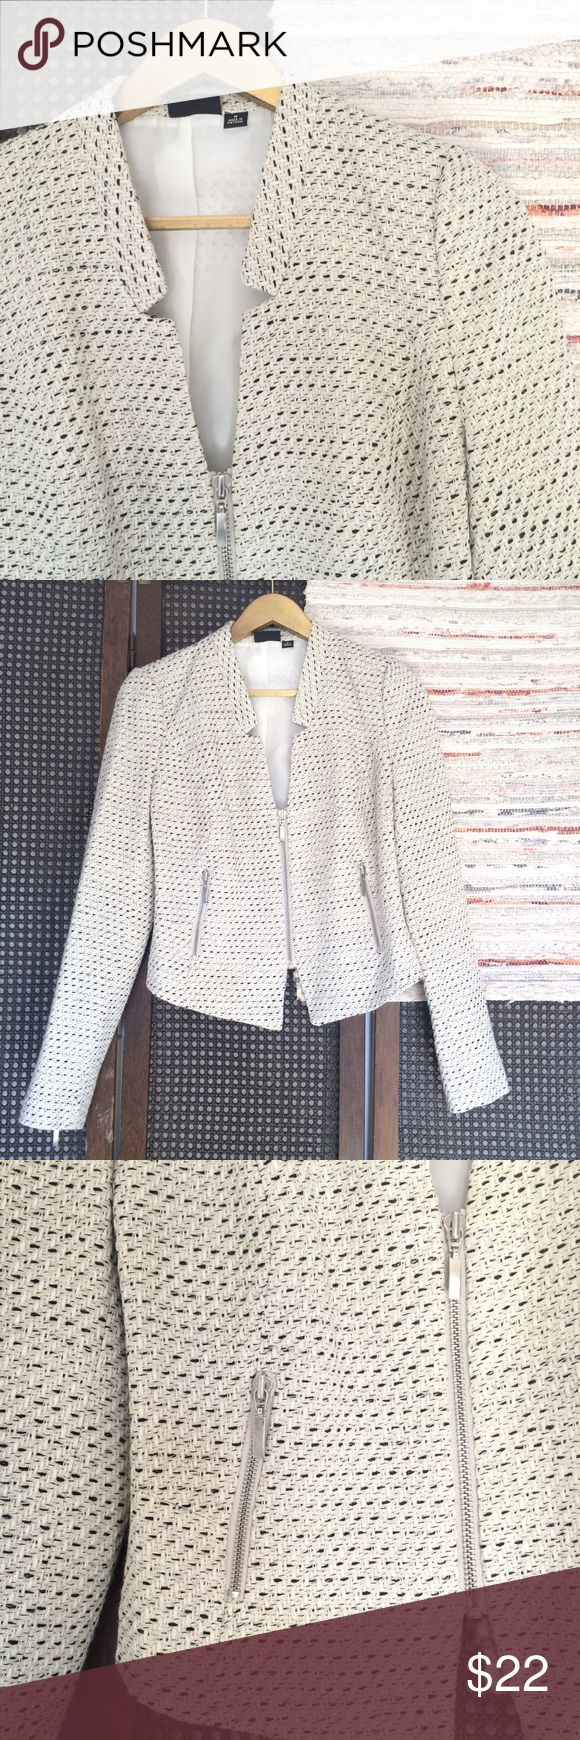 """Woven Zippered Blazer With No Lapels Cream with black and silver woven into it. Silver hard wear. Zips up the front and up the sleeves.  Zippered pockets. Feminine cut. Bust 19.5"""" length 19-23"""" sleeves 25""""   •I don't swap/trade •I don't do holds  •I rarely model due to the fact that I don't fit all items.  •I price with shipping in mind  •I am open to reasonable negotiations  •Bundle for the best deals  ☮   ❤️   😊 a.n.a Jackets & Coats Blazers"""